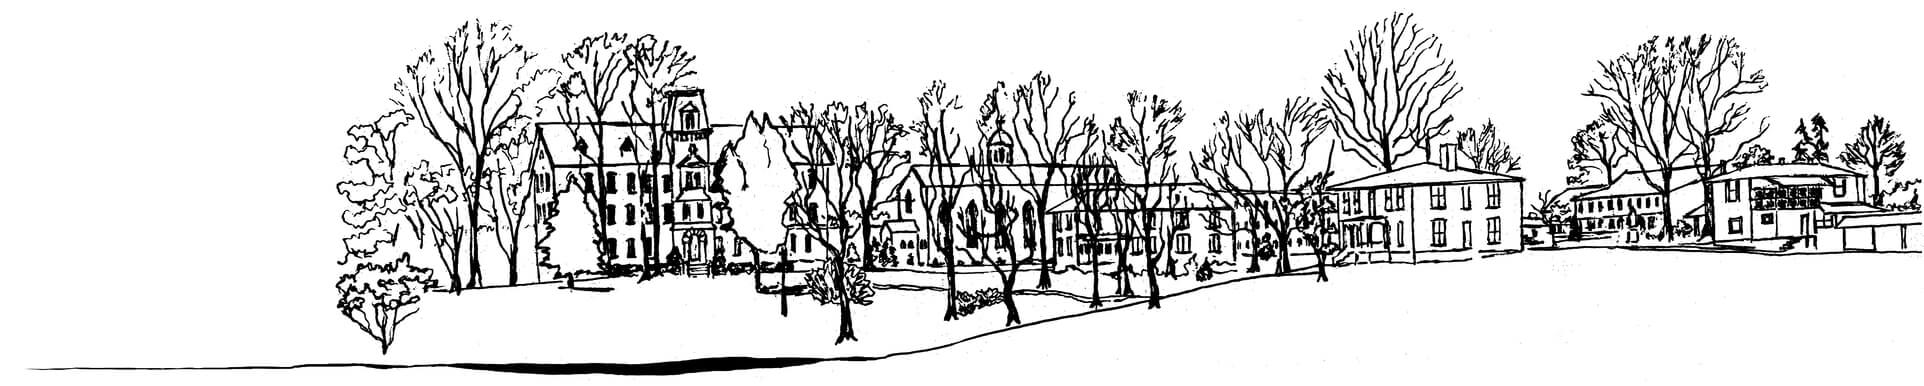 Motherhouse Sketch B&W